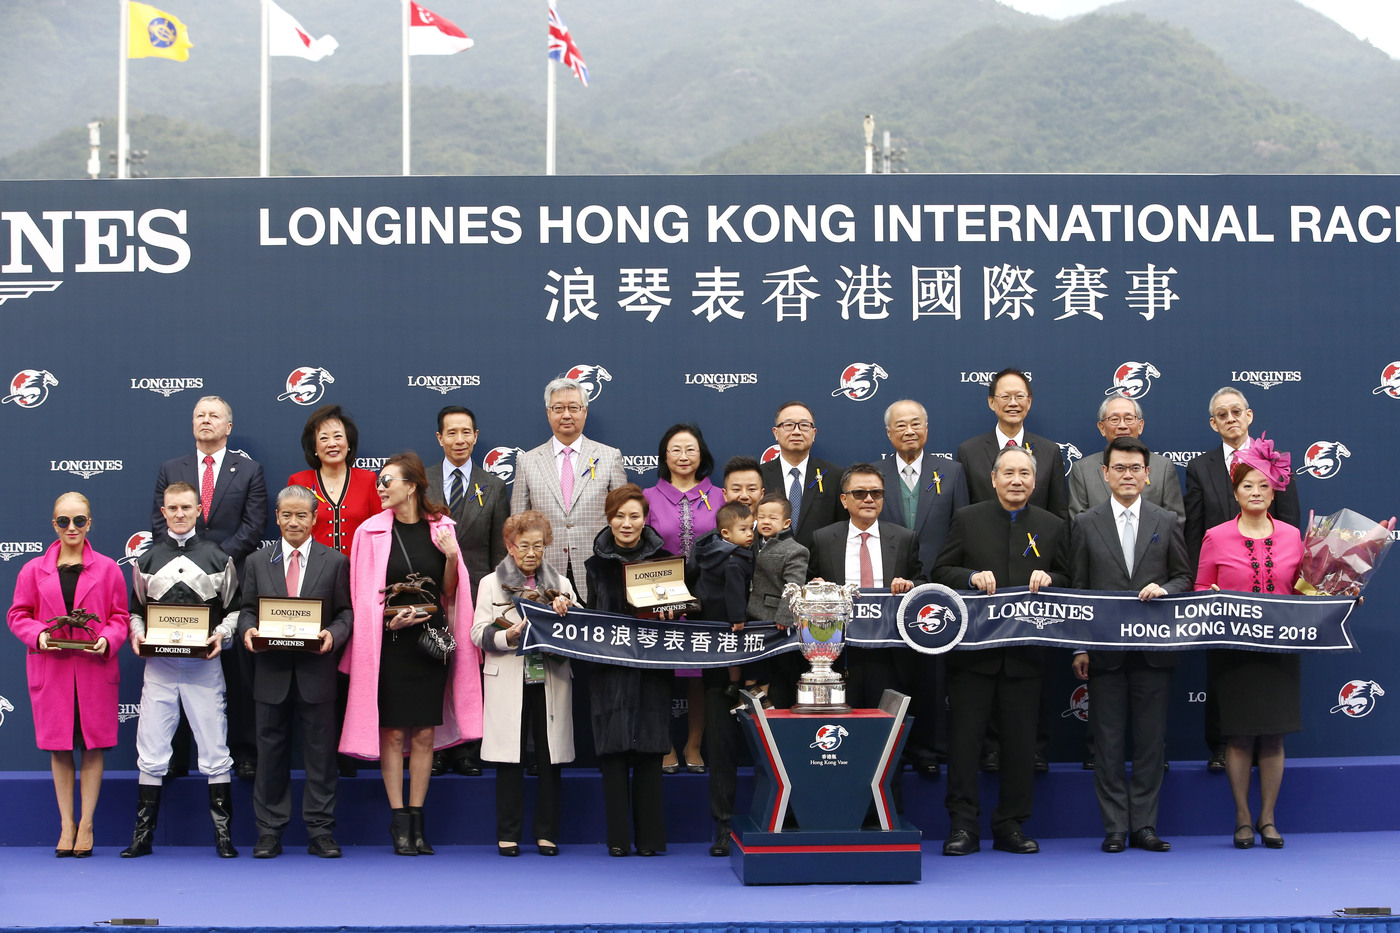 Longines Flat Racing Event: The Longines Hong Kong International Races:  four races, four chances to become a legend 15